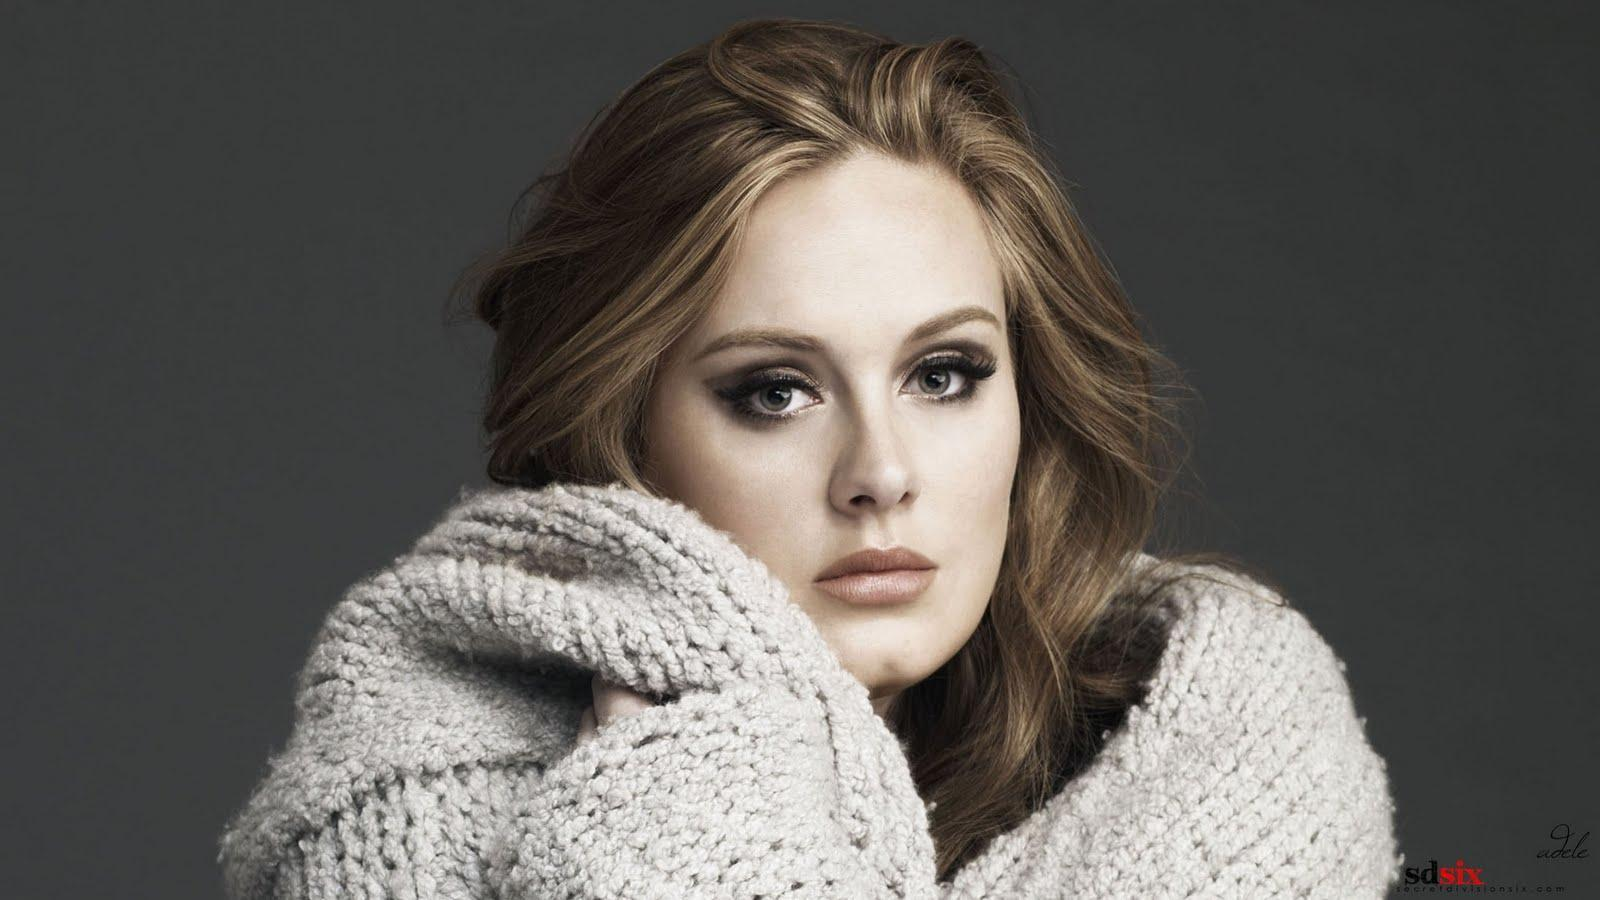 27 Free Adele Wallpapers